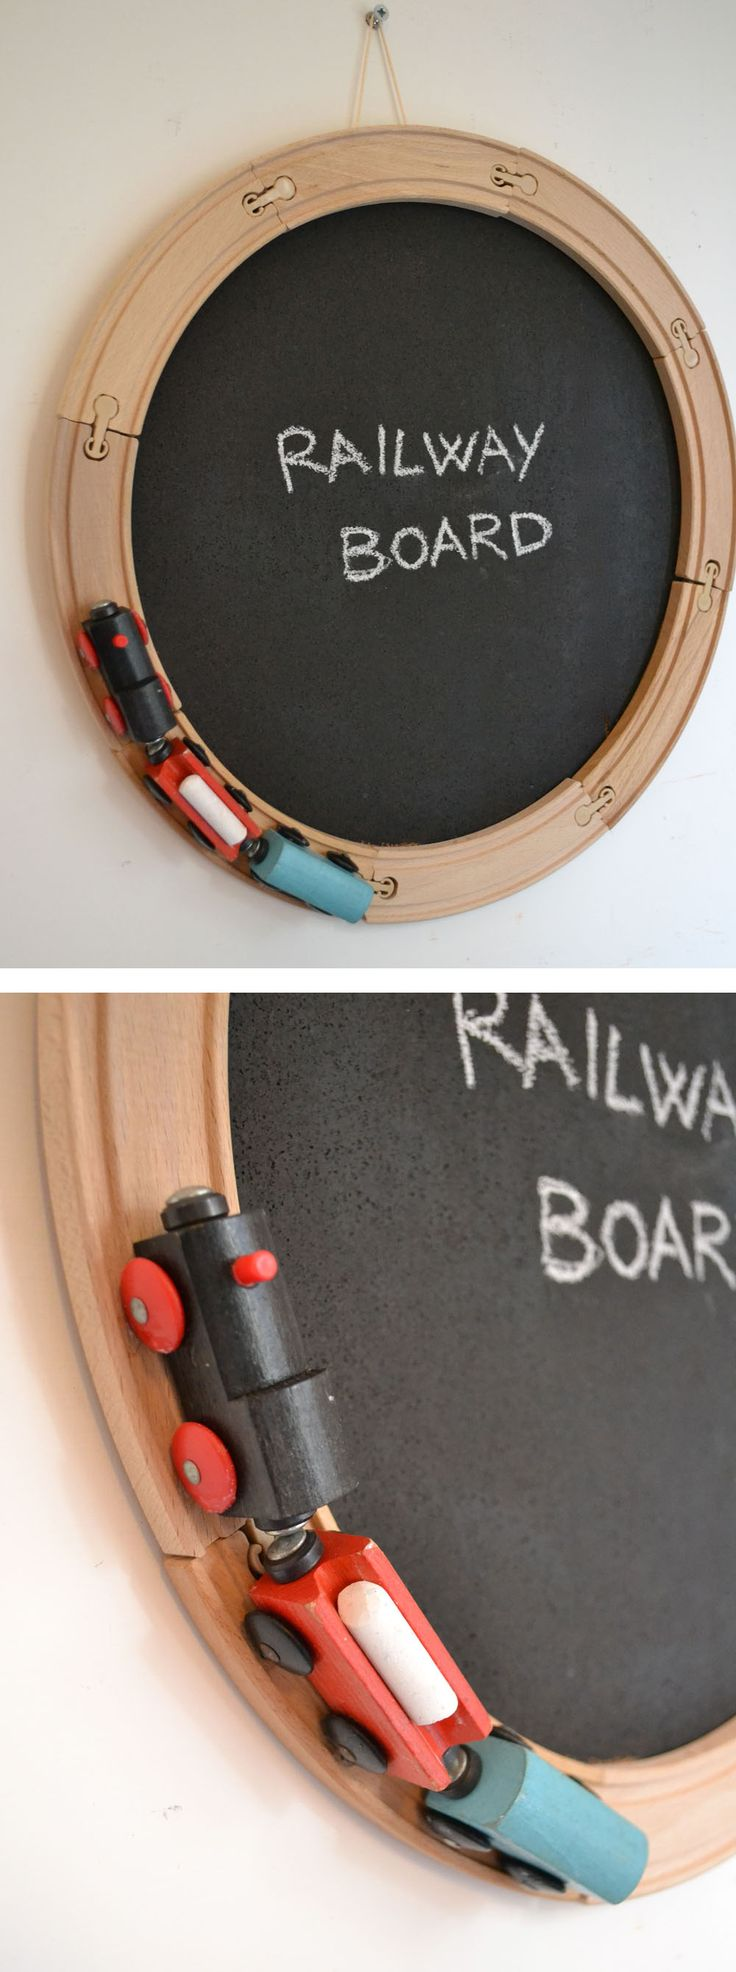 Another Ikea hack awesome idea. Another tidbit for your cubby house interior decorating.